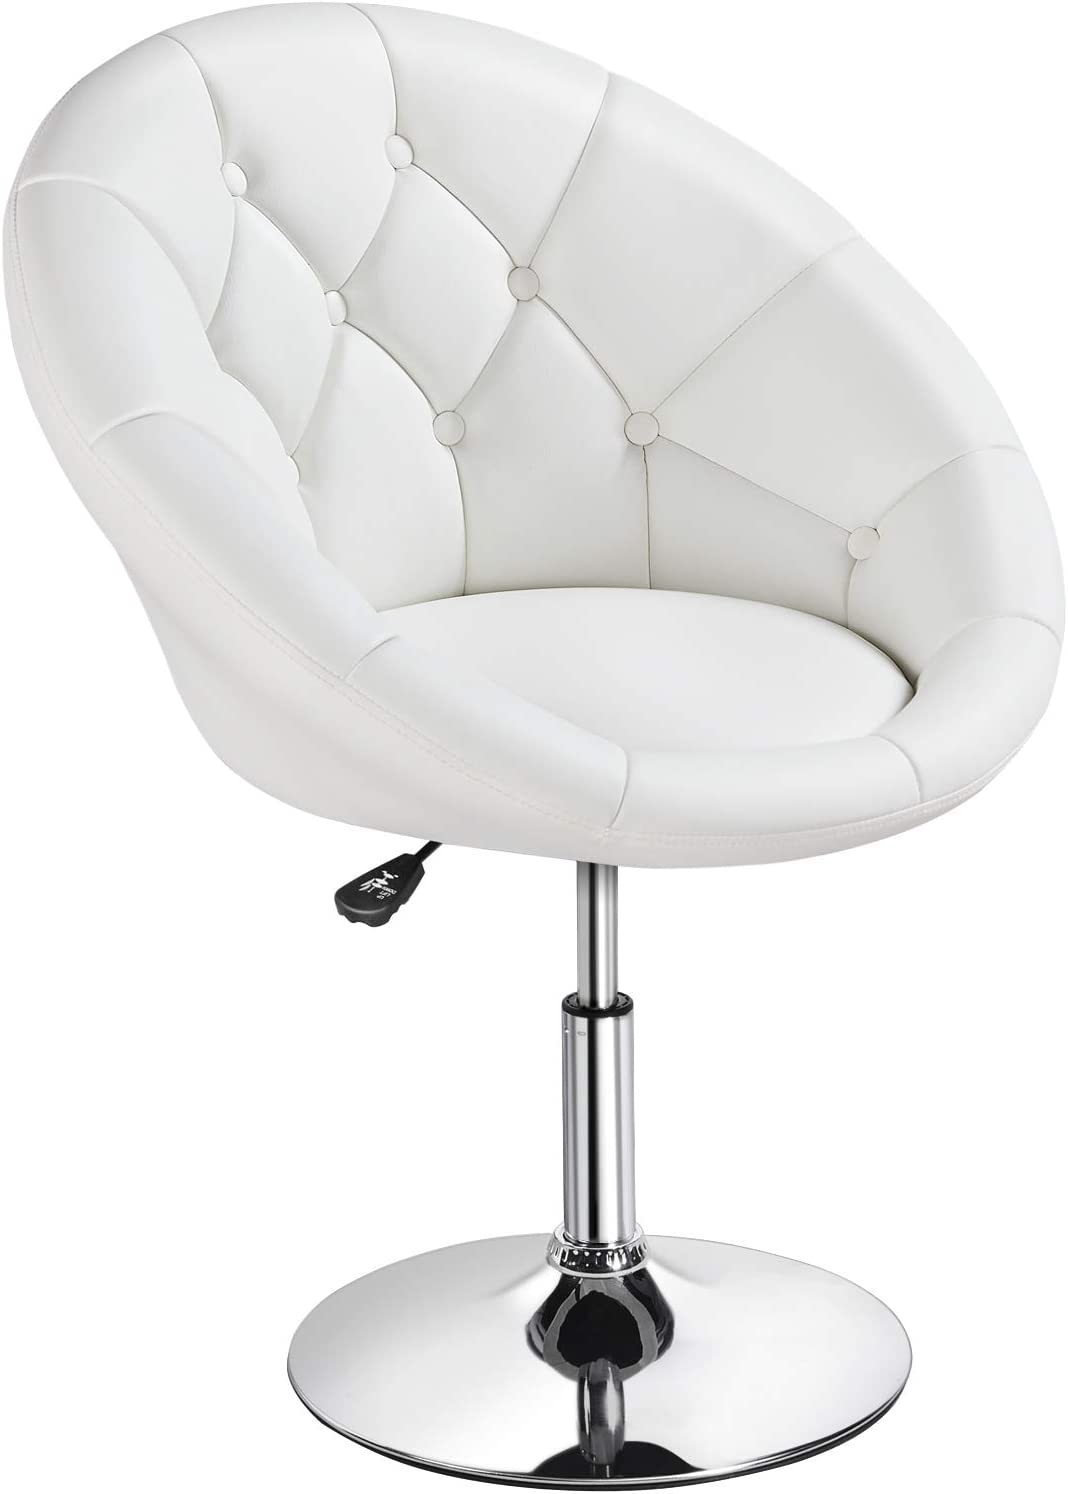 YAHEETECH Adjustable Modern Round Tufted Back Chair Tilt Swivel Chair Vanity Chair Barstool Lounge Pub Bar,White: Furniture & Decor